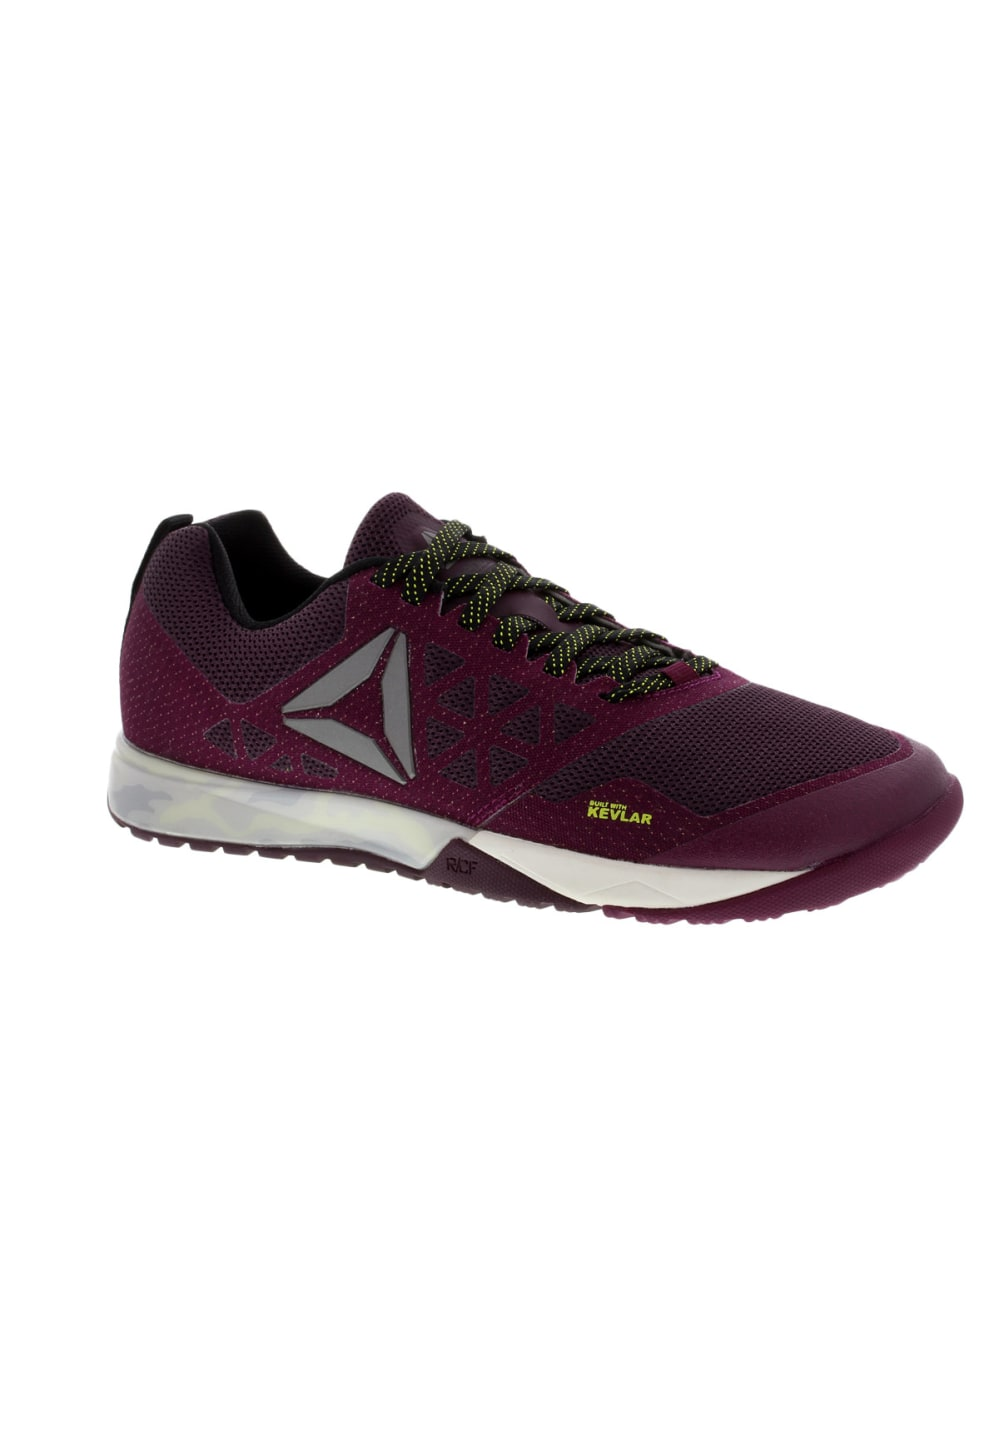 Pour Femme Rouge Chaussures Fitness Nano Reebok Crossfit 0 6 gYbv76fy